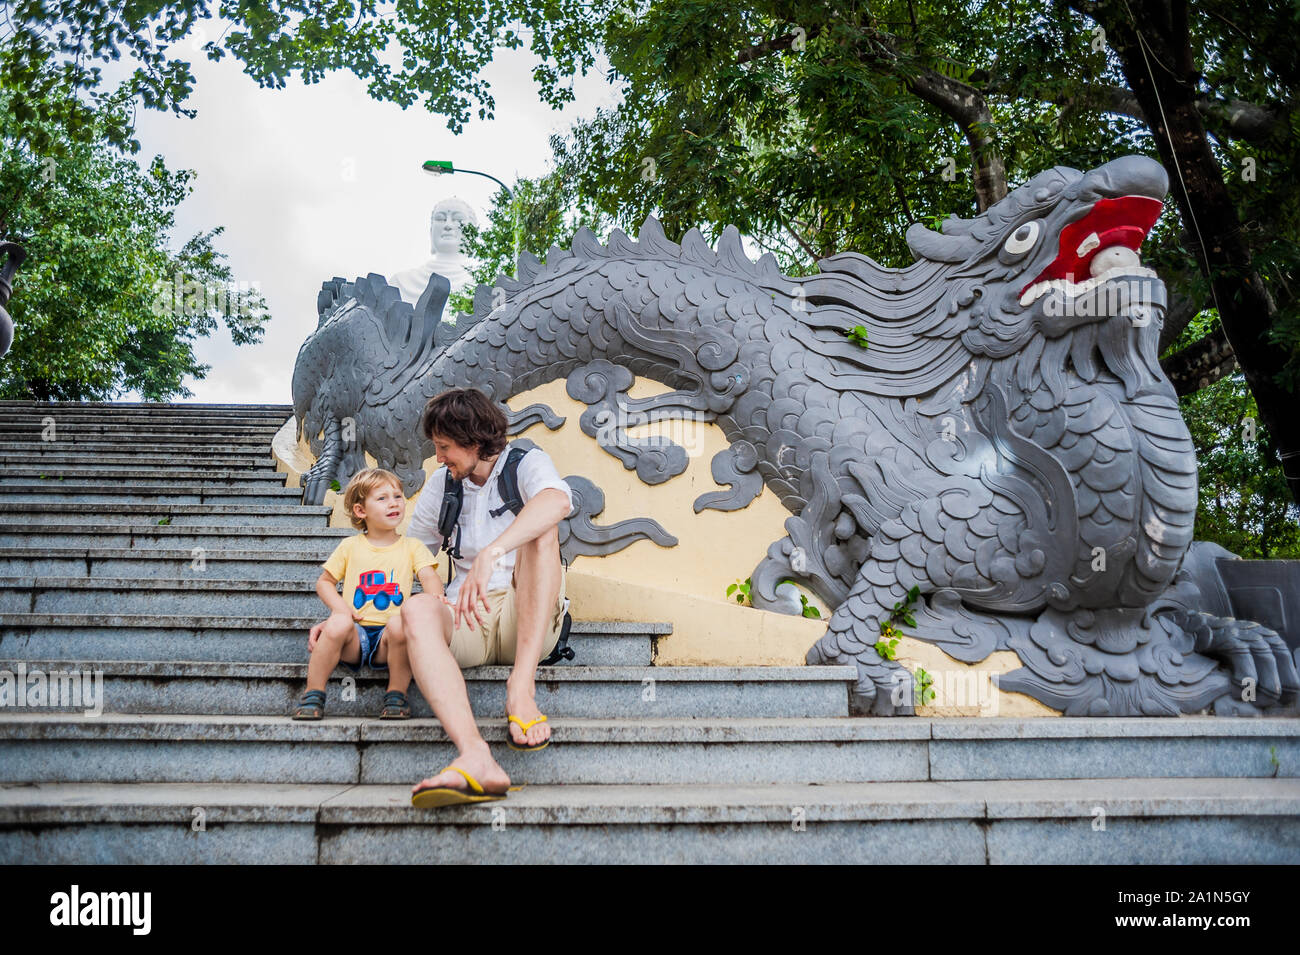 Happy tourists dad and son in Long Son Pagoda. Travel to Asia concept. Traveling with a baby concept. Stock Photo